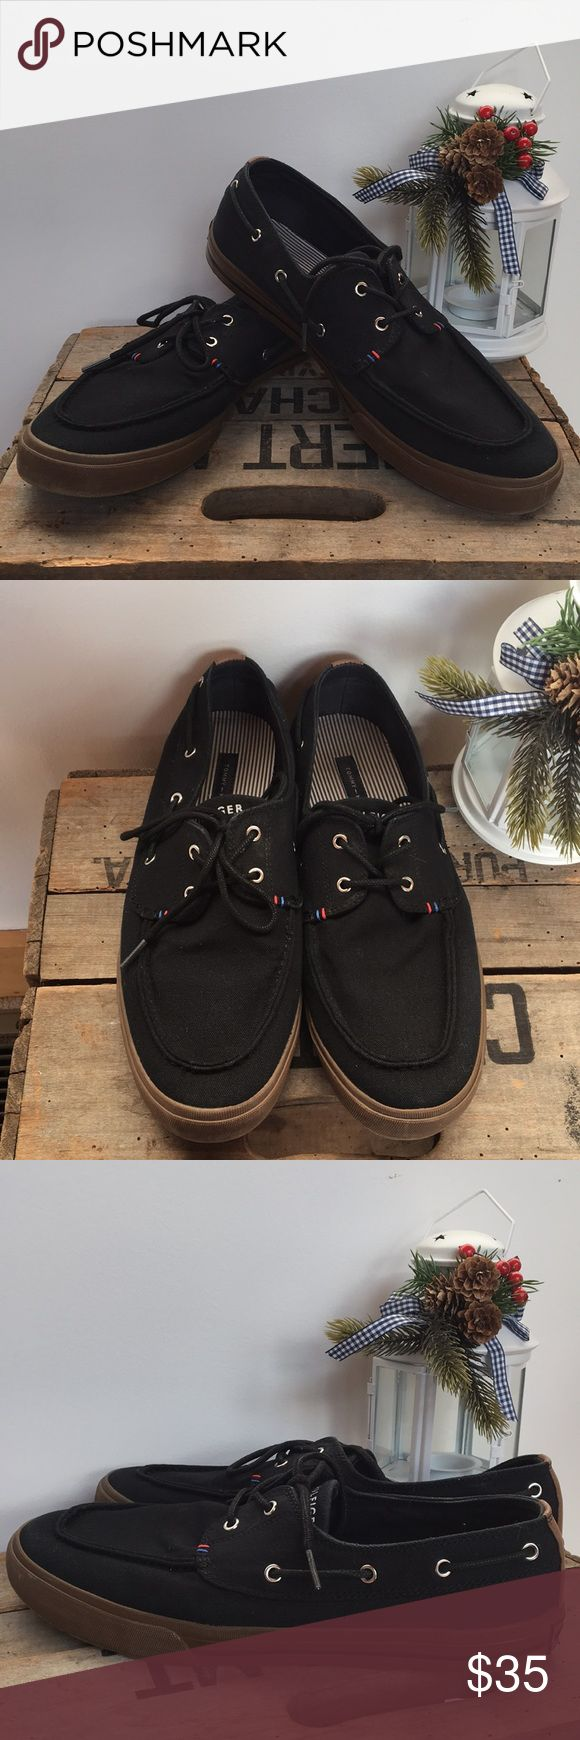 MENS Tommy Hilfiger Sneakers Black canvas boat shoes with brown shoes in excellent used condition Tommy Hilfiger Shoes Boat Shoes